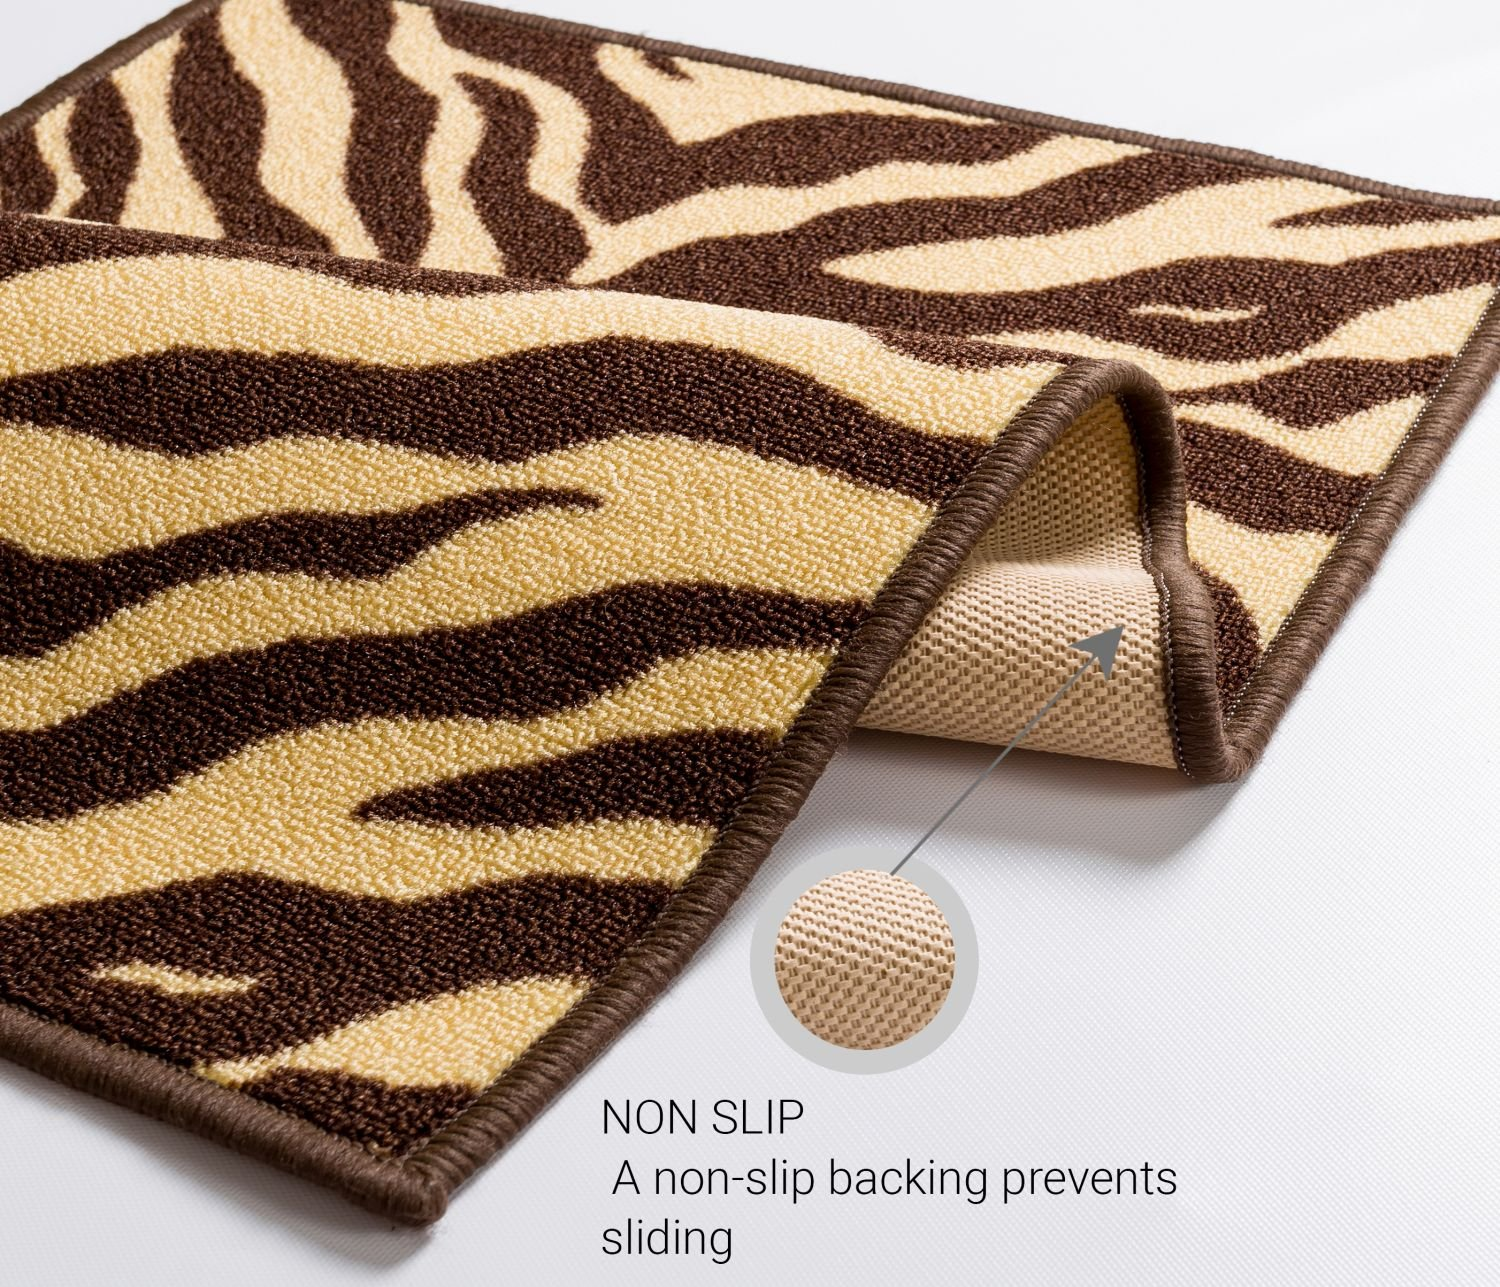 Well Woven Non-Skid Slip Rubber Back Antibacterial 2x5 (1'8'' x 5') Door Mat Runner Rug Brown Zebra Animal Print Stripes Modern Thin Low Pile Machine Washable Indoor Outdoor Kitchen Hallway Entry by Well Woven (Image #5)